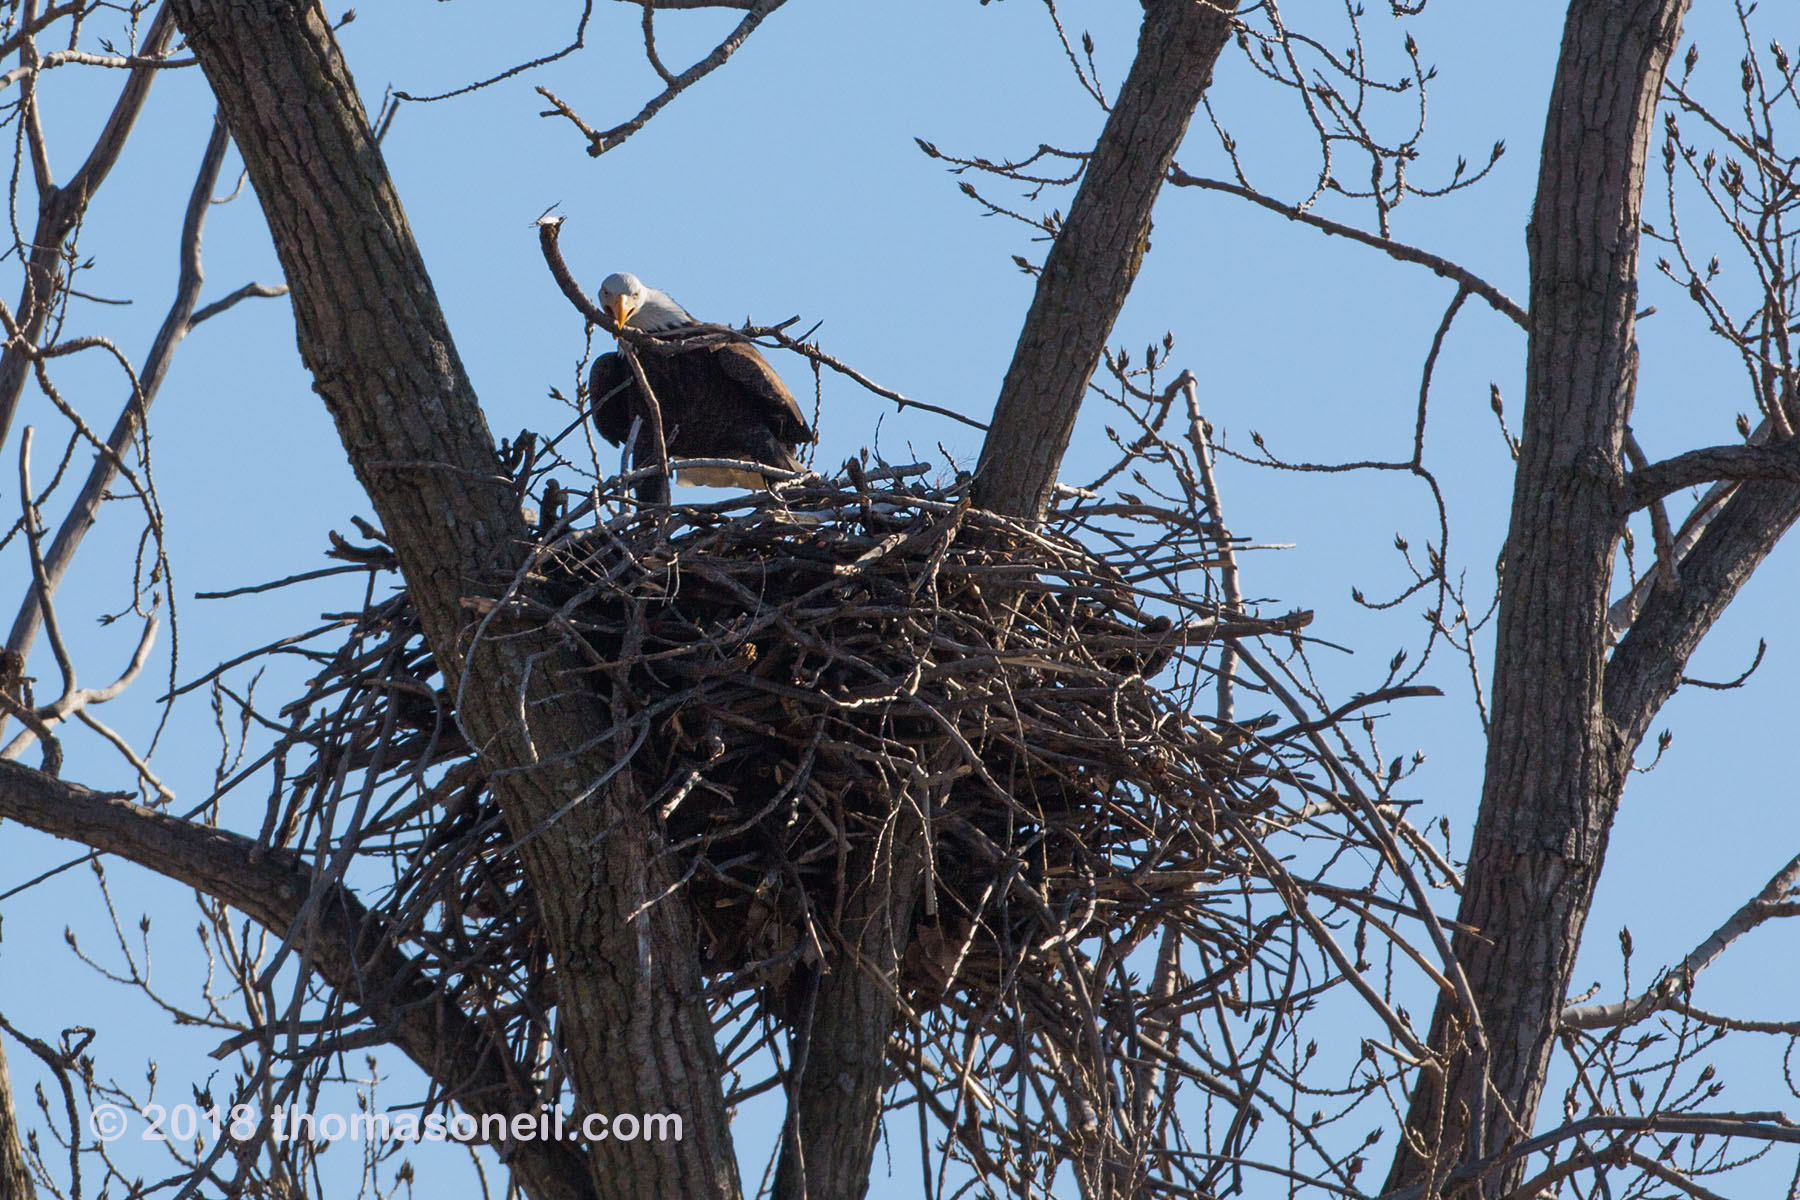 Bald eagle placing stick in the nest, Loess Bluffs National Wildlife Refuge, Missouri, December 2018.  Click for next photo.